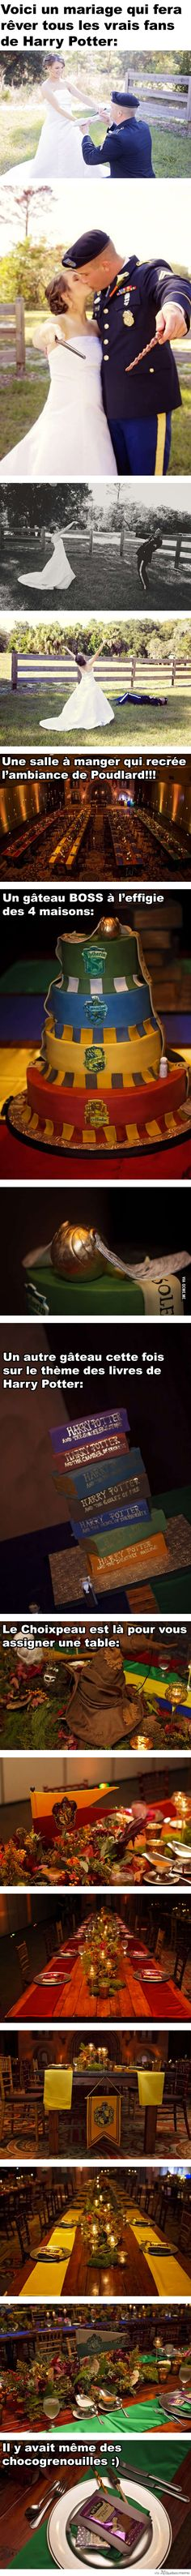 Mariage sur le thème de Harry Potter Plus (How To Get Him To Propose You Are) Theme Harry Potter, Harry Potter Wedding, Harry Potter Facts, Harry Potter Quotes, Harry Potter Diy, Harry Potter Universal, Harry Potter World, It's My Life, Movies And Series